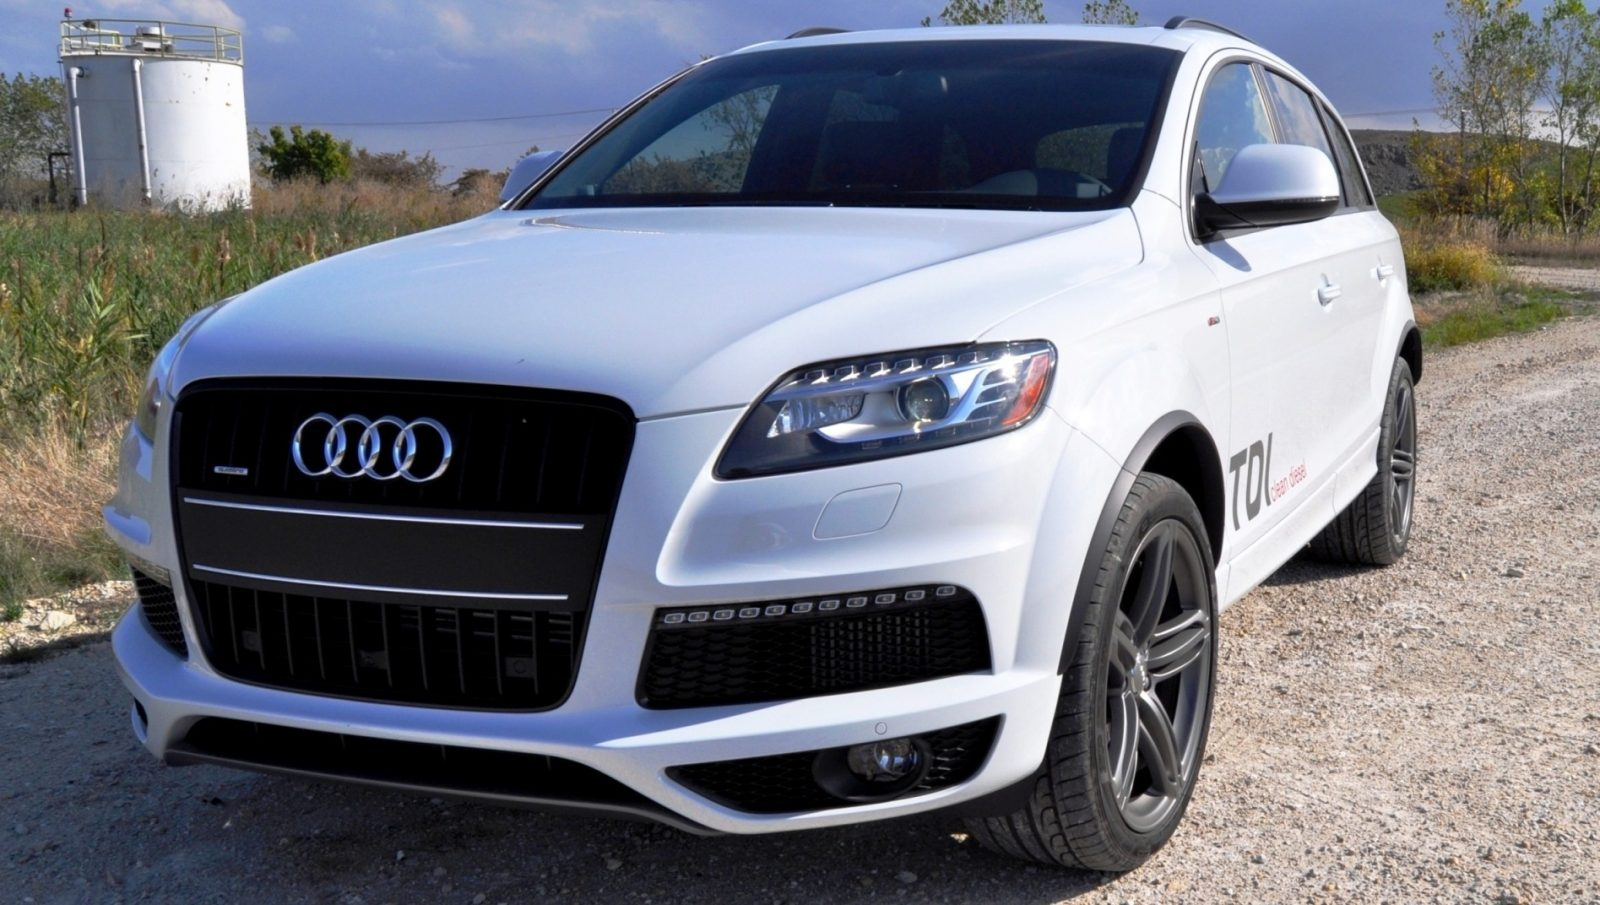 2014 Audi Q7 TDI S-line Plus - Carrara White 18